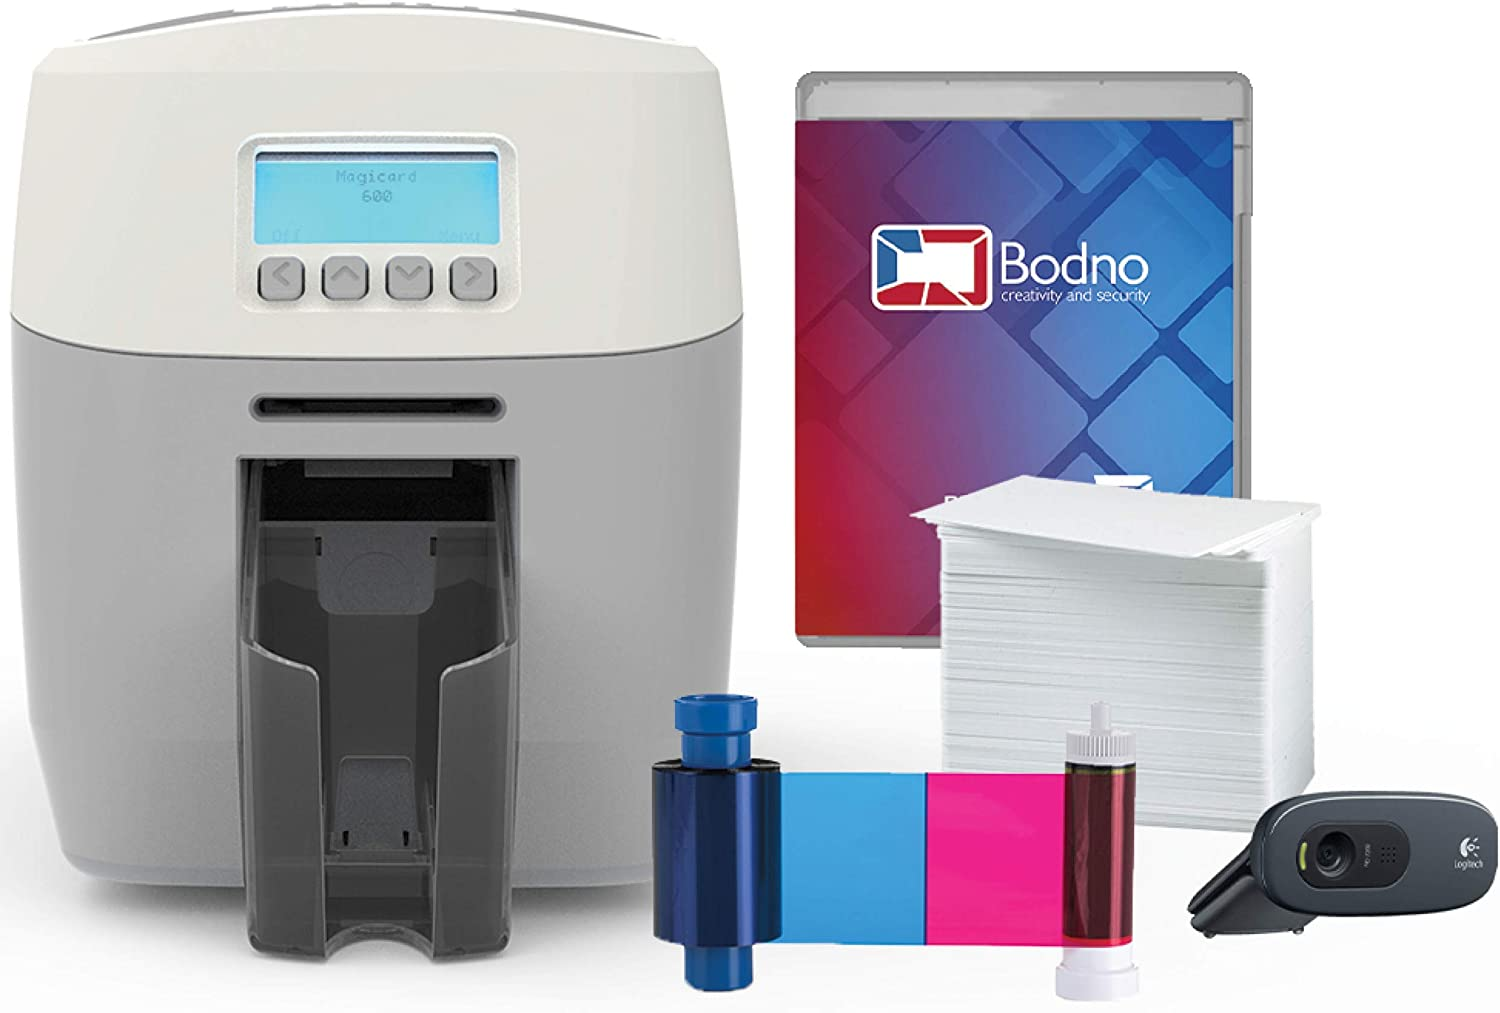 Magicard 600 Dual Sided ID Card Printer & Complete Supplies Package with Bodno ID Software - Bronze Edition